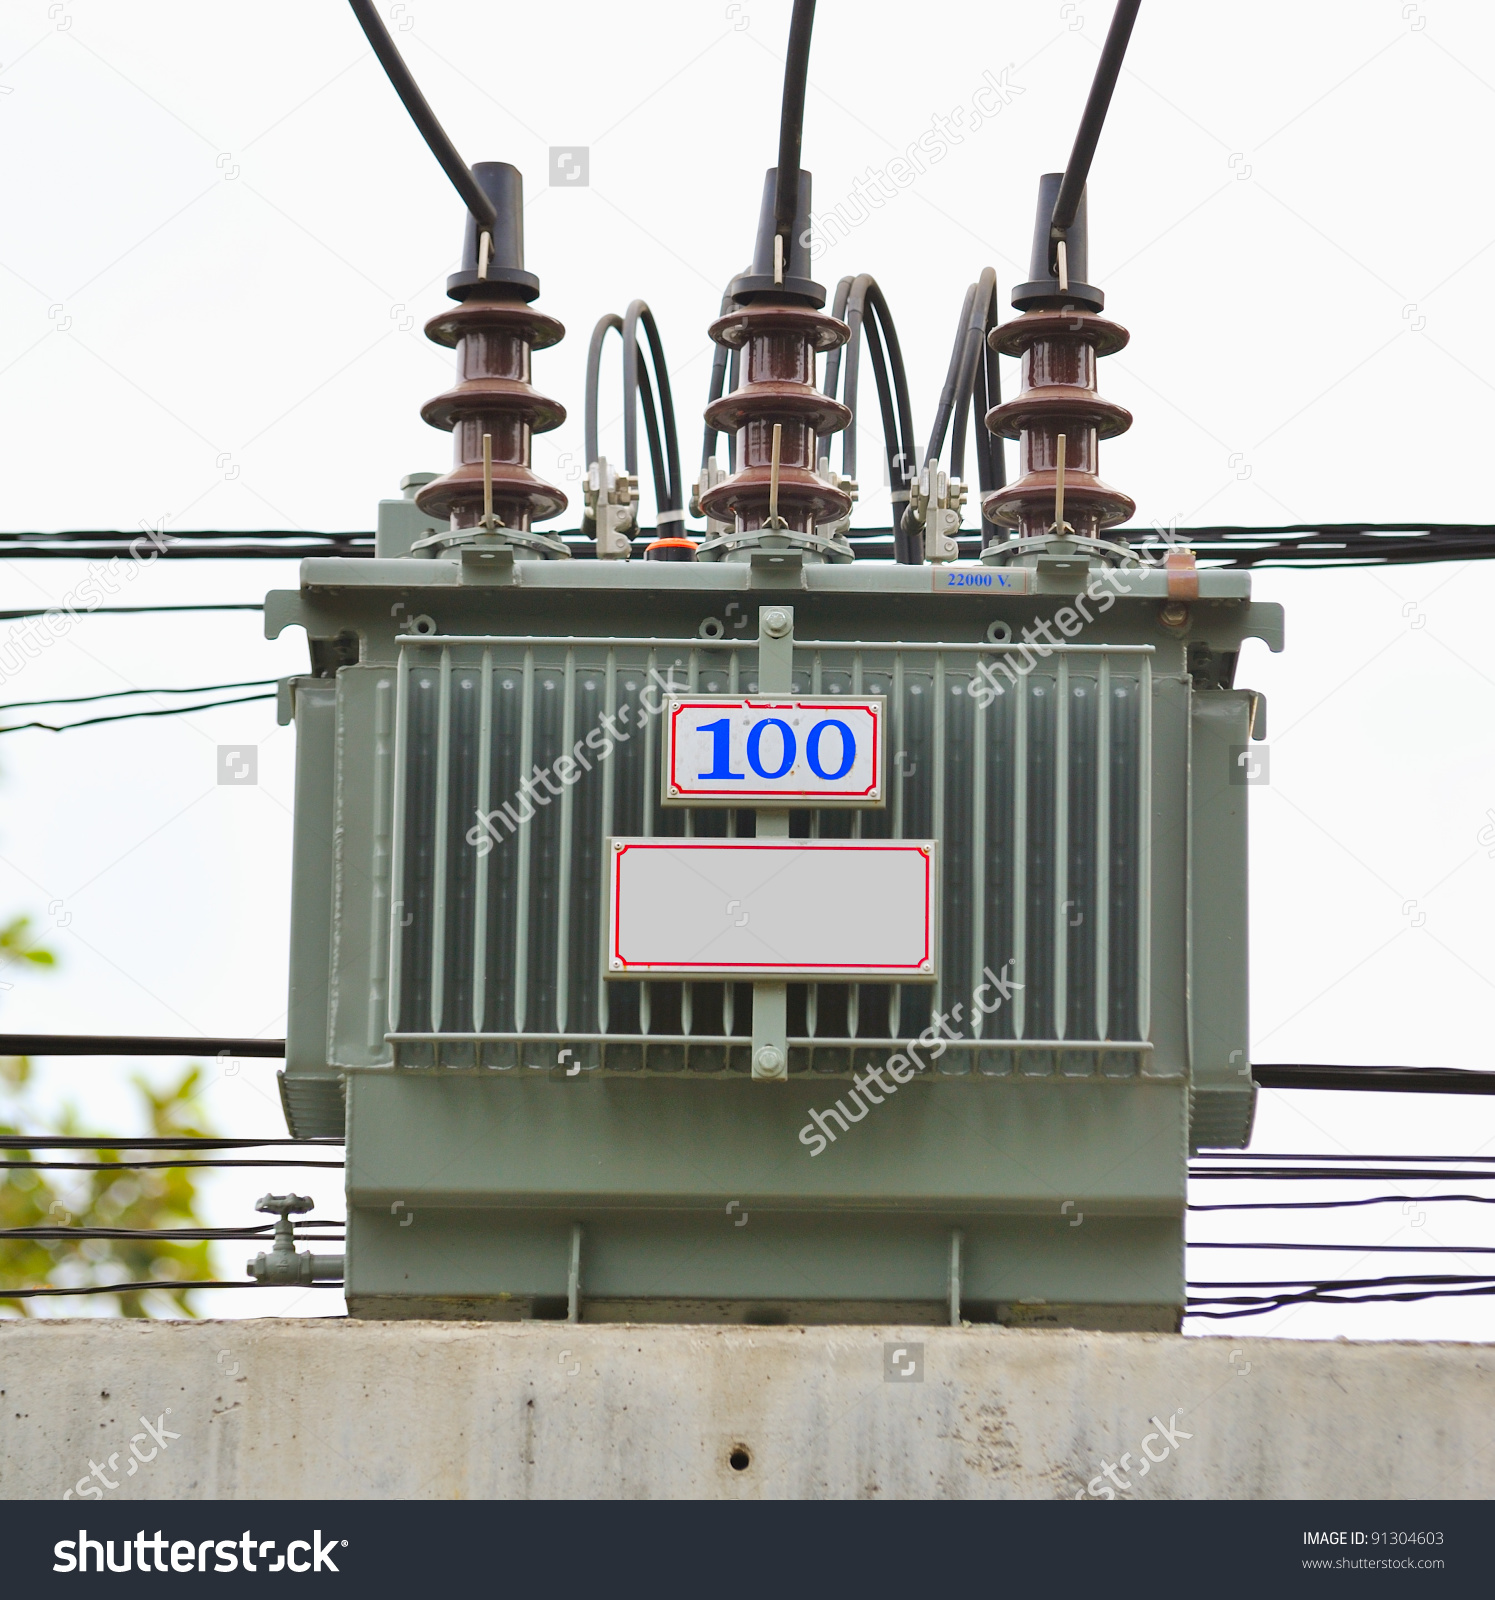 Electric Transformer On Some Power Concrete Stock Photo 91304603.